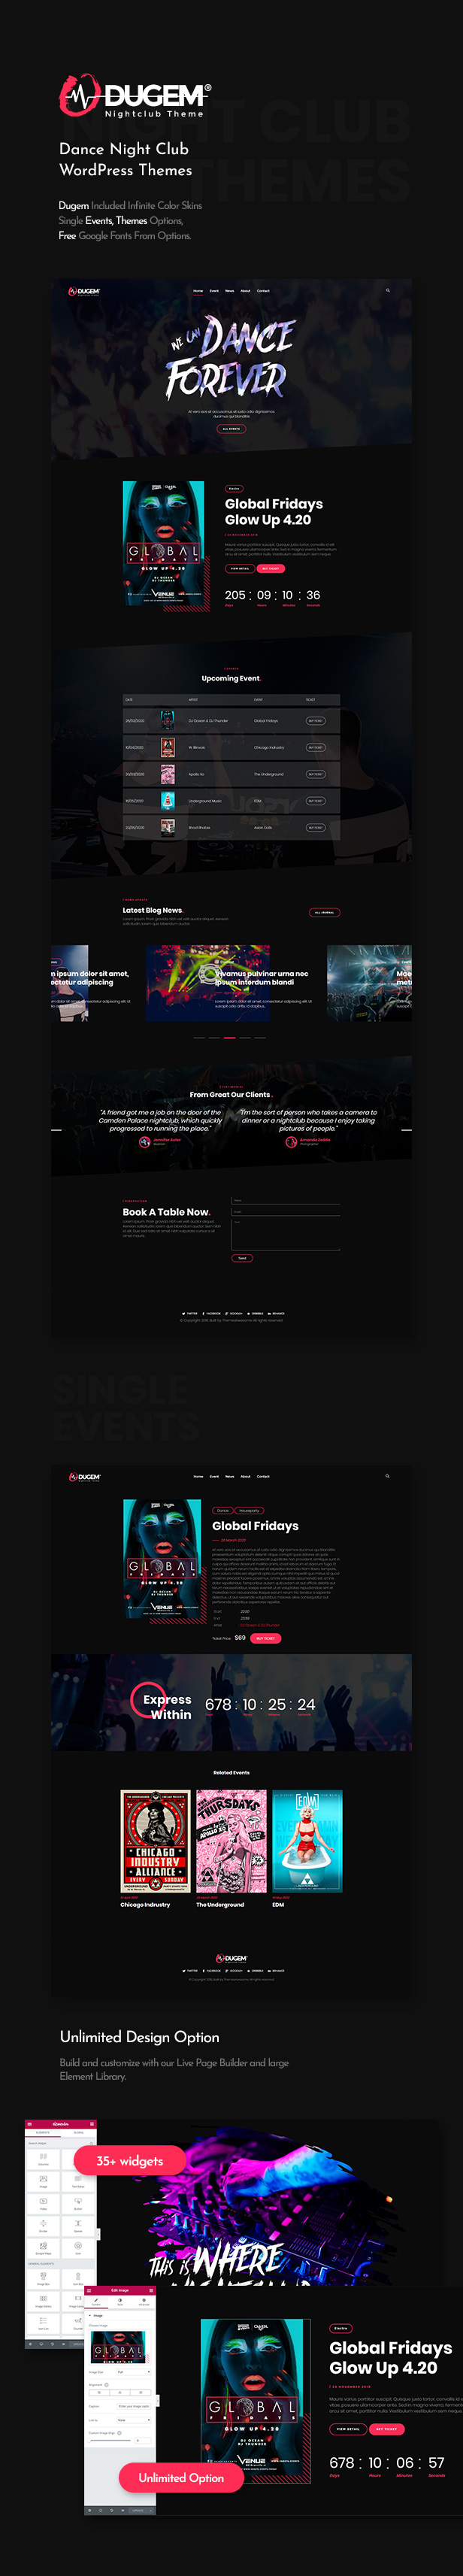 Dugem | Dance Night Club WordPress Theme